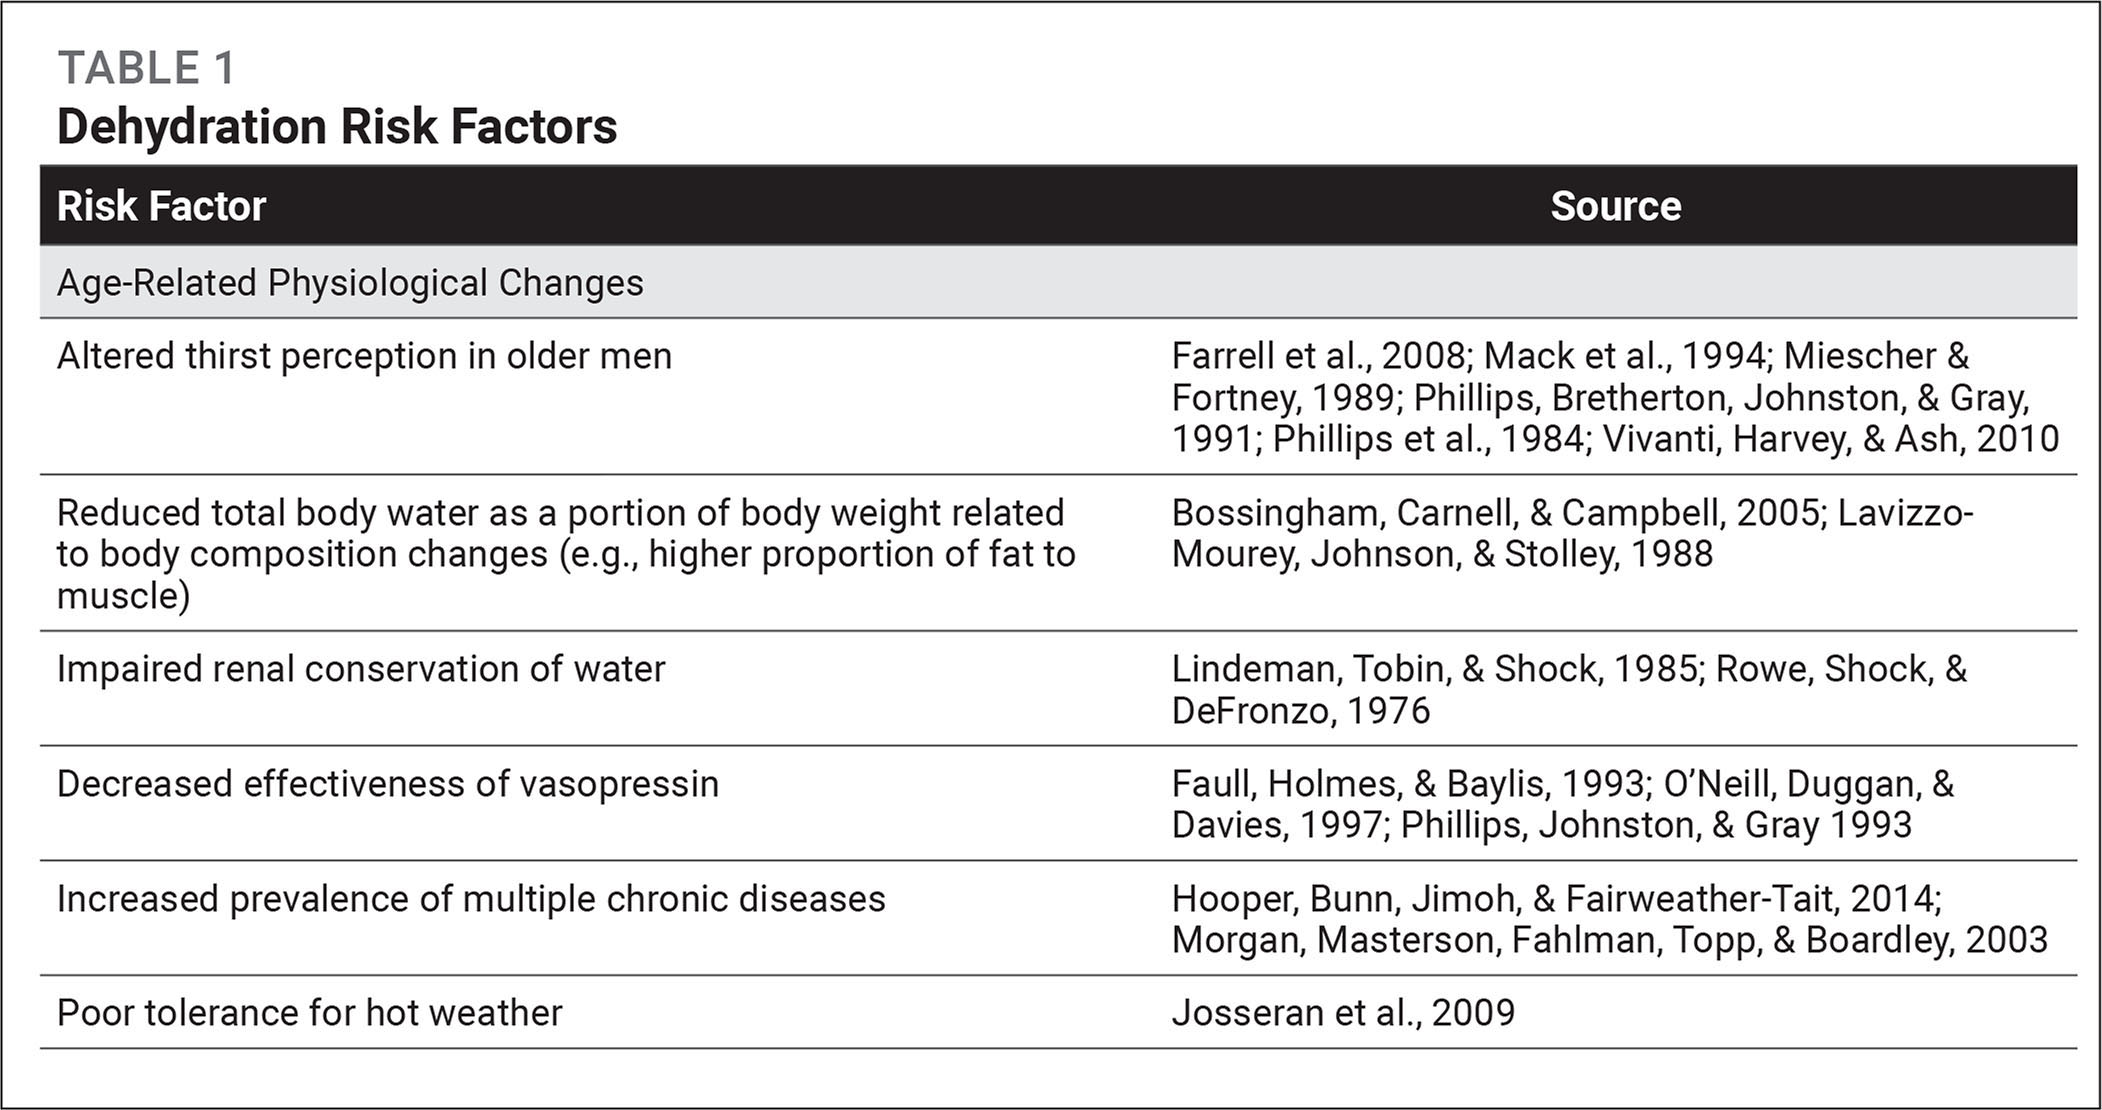 Dehydration Risk Factors